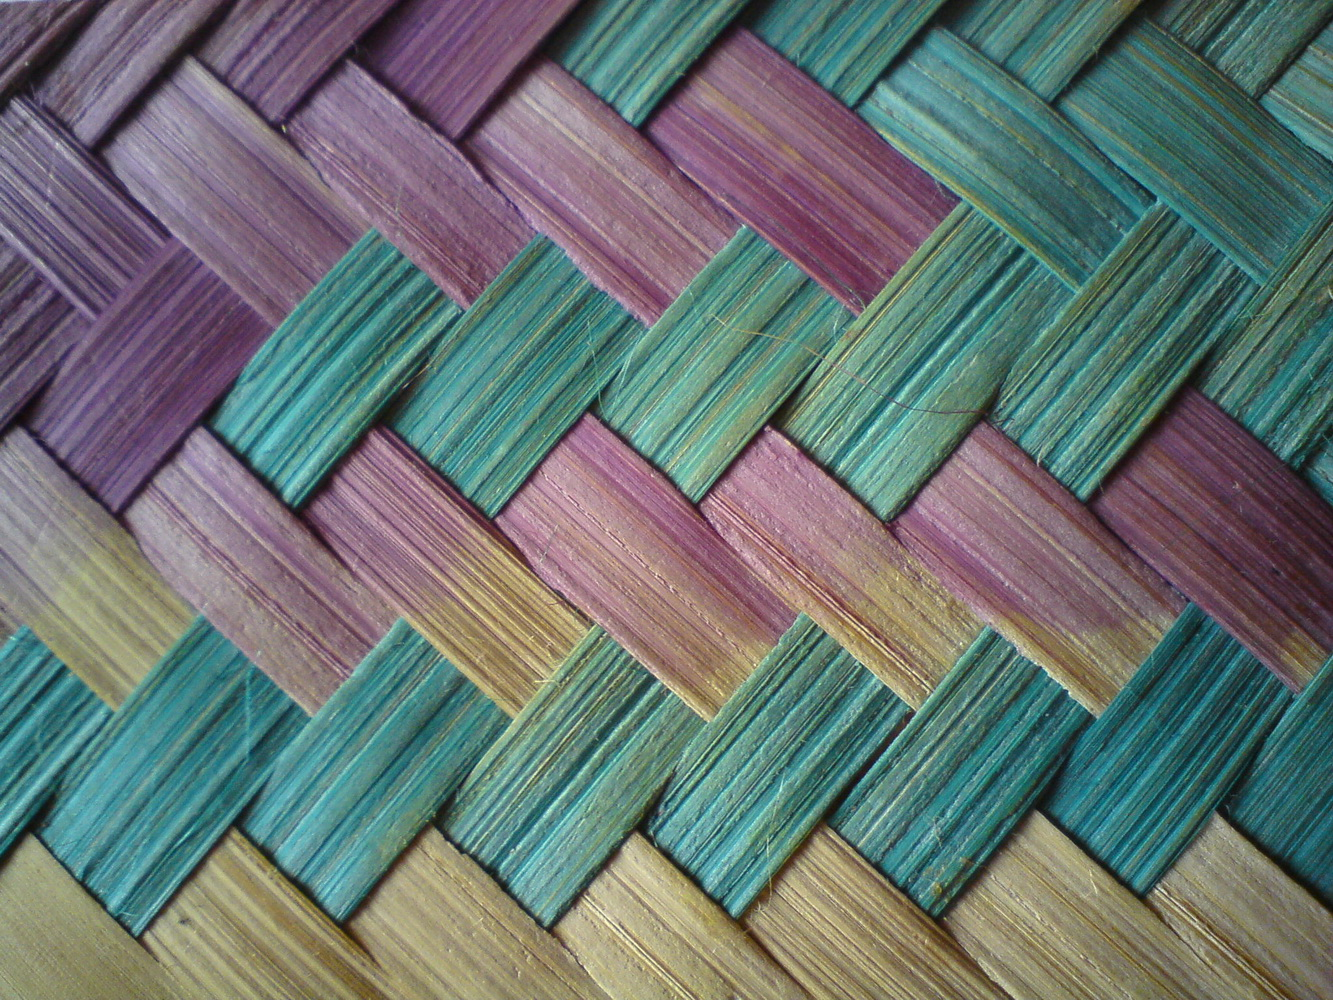 Webbing, Bamboo, Brown, Green, Purple, HQ Photo